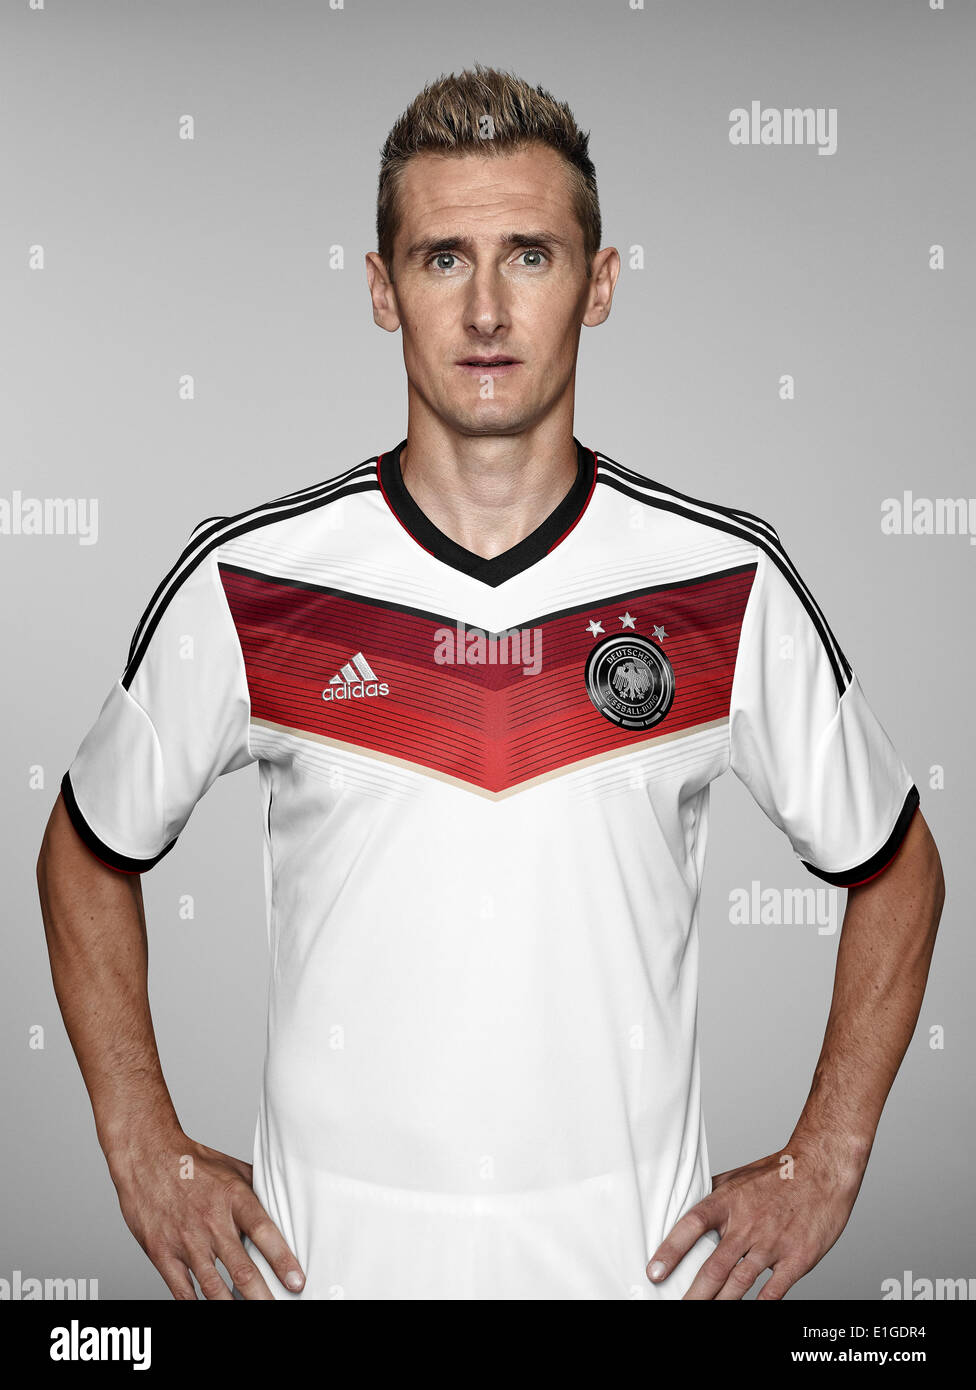 FIFA World Cup 2014 - photocall Team Germany, 24 May 2014 in Passeier, Italy: Miroslav Klose. Photo credit: Bongarts/Getty Images/German Football Association/dpa (editorial use only) - Stock Image